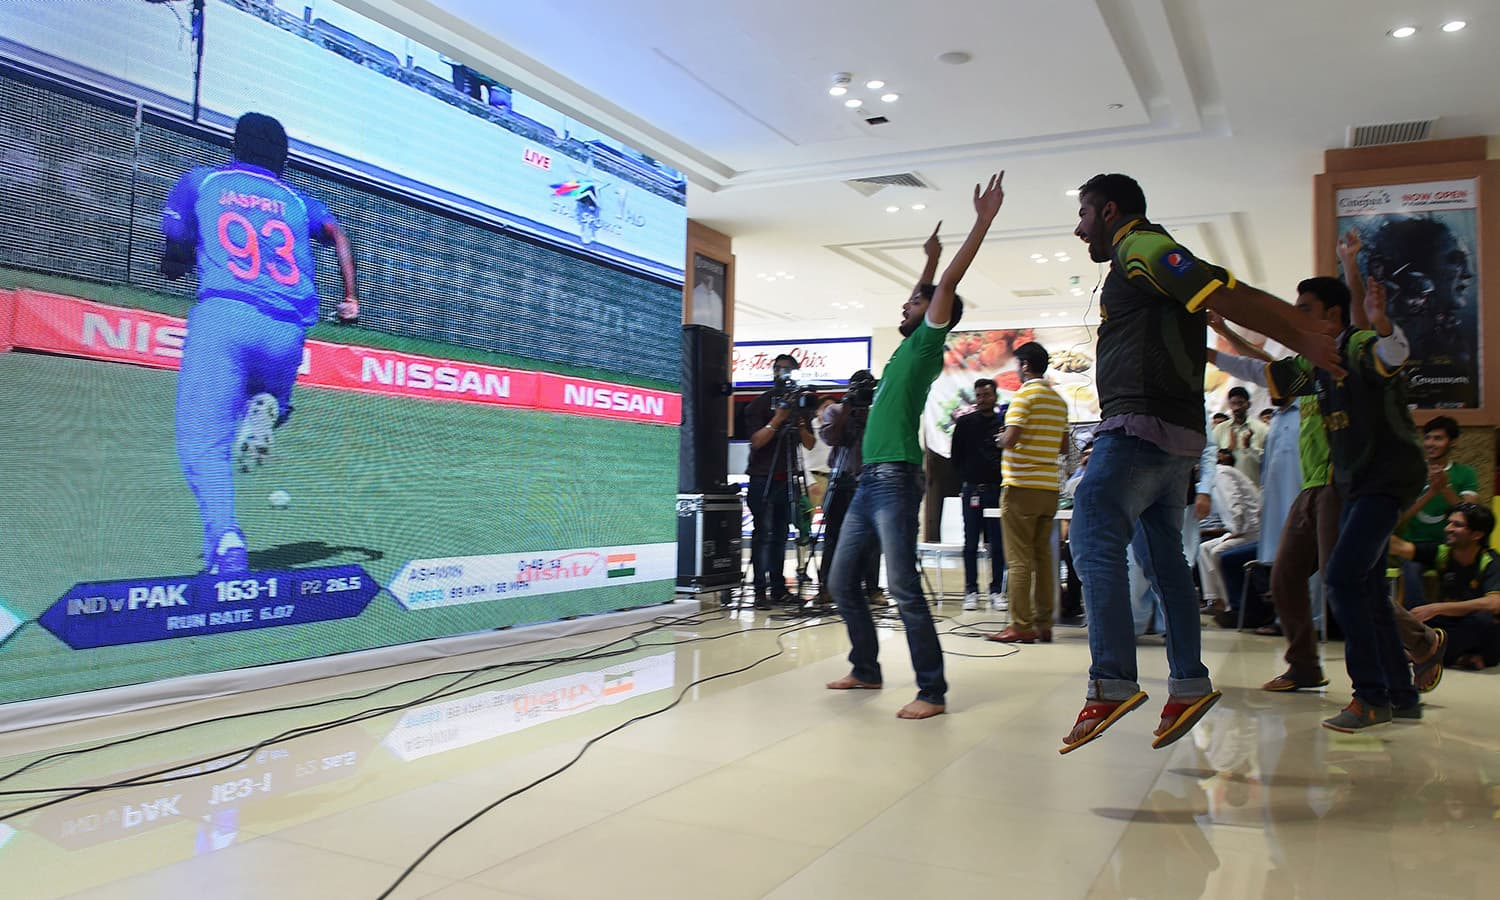 Pakistani cricket fans celebrate as they watch the cricket final match between Pakistan and India at a shopping mall in Lahore on June 18.─AFP